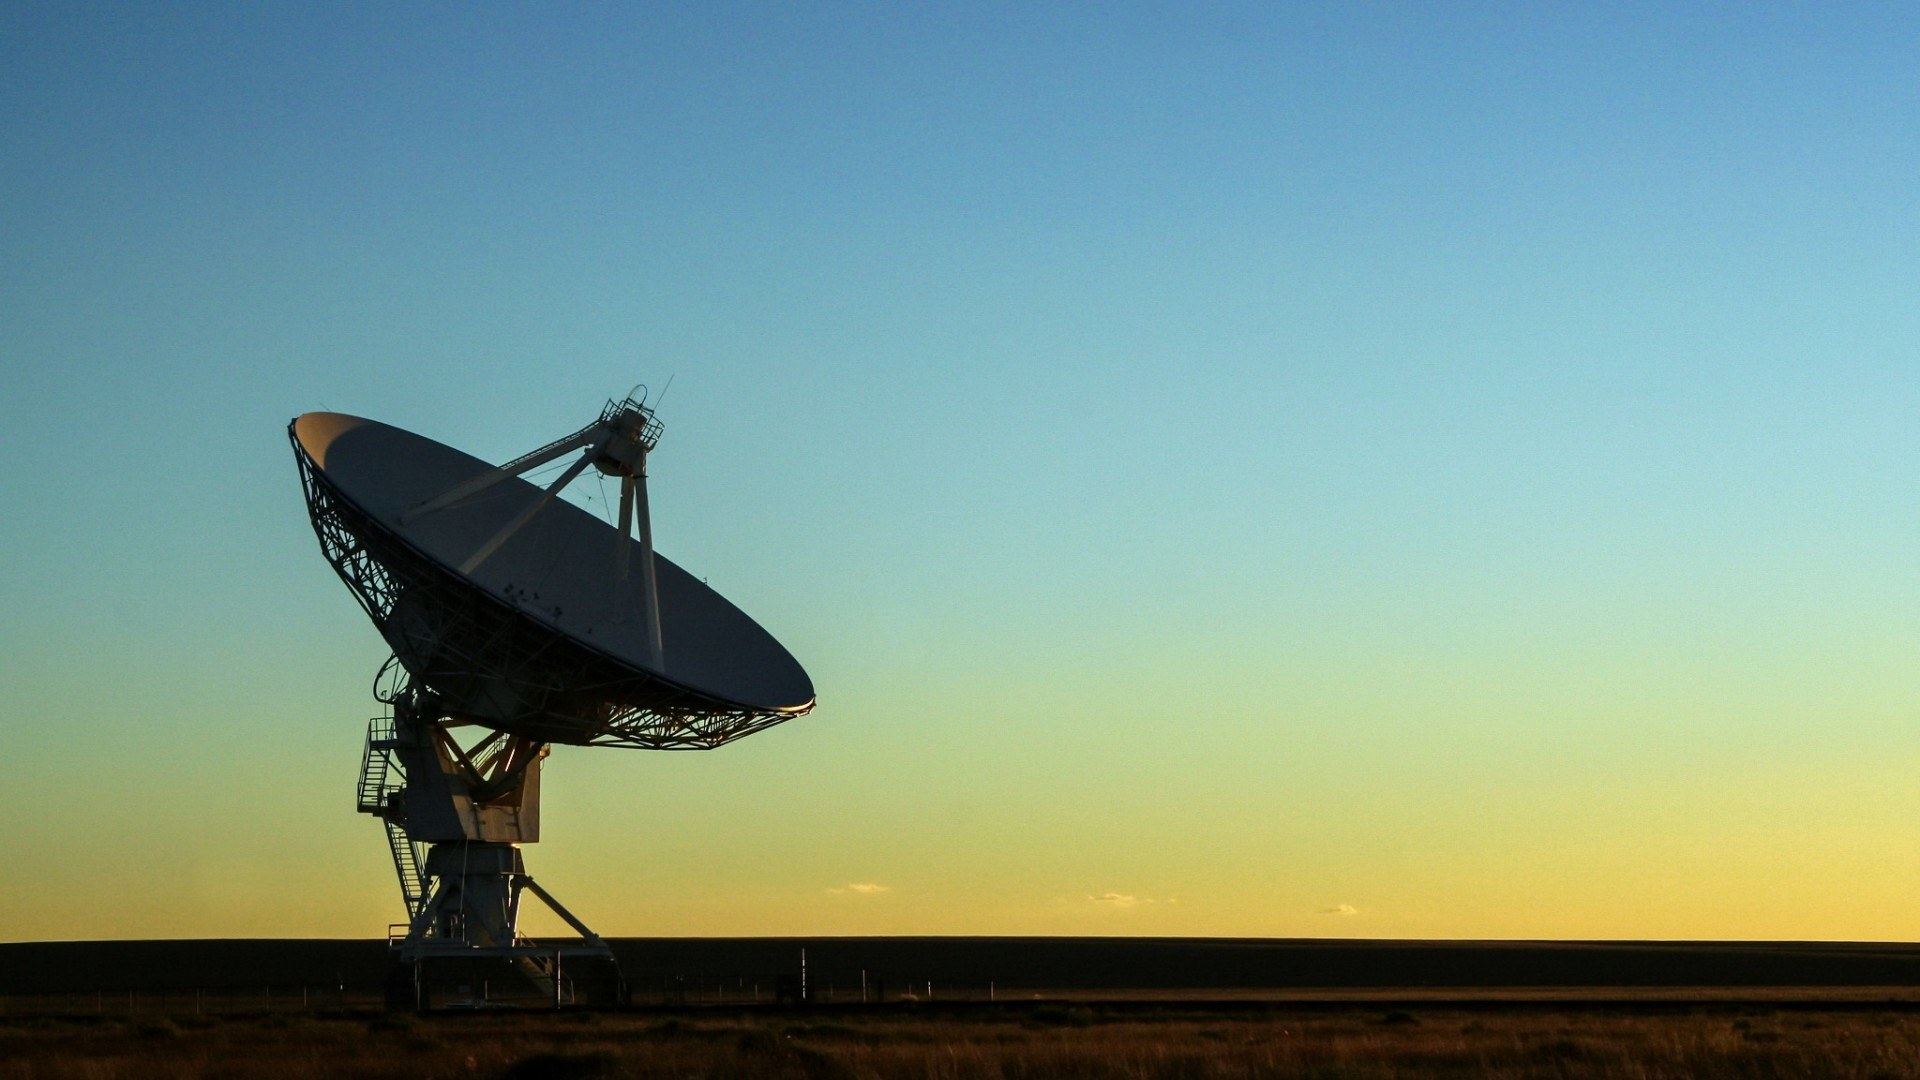 Wallpaper download Radio telescope at sunset